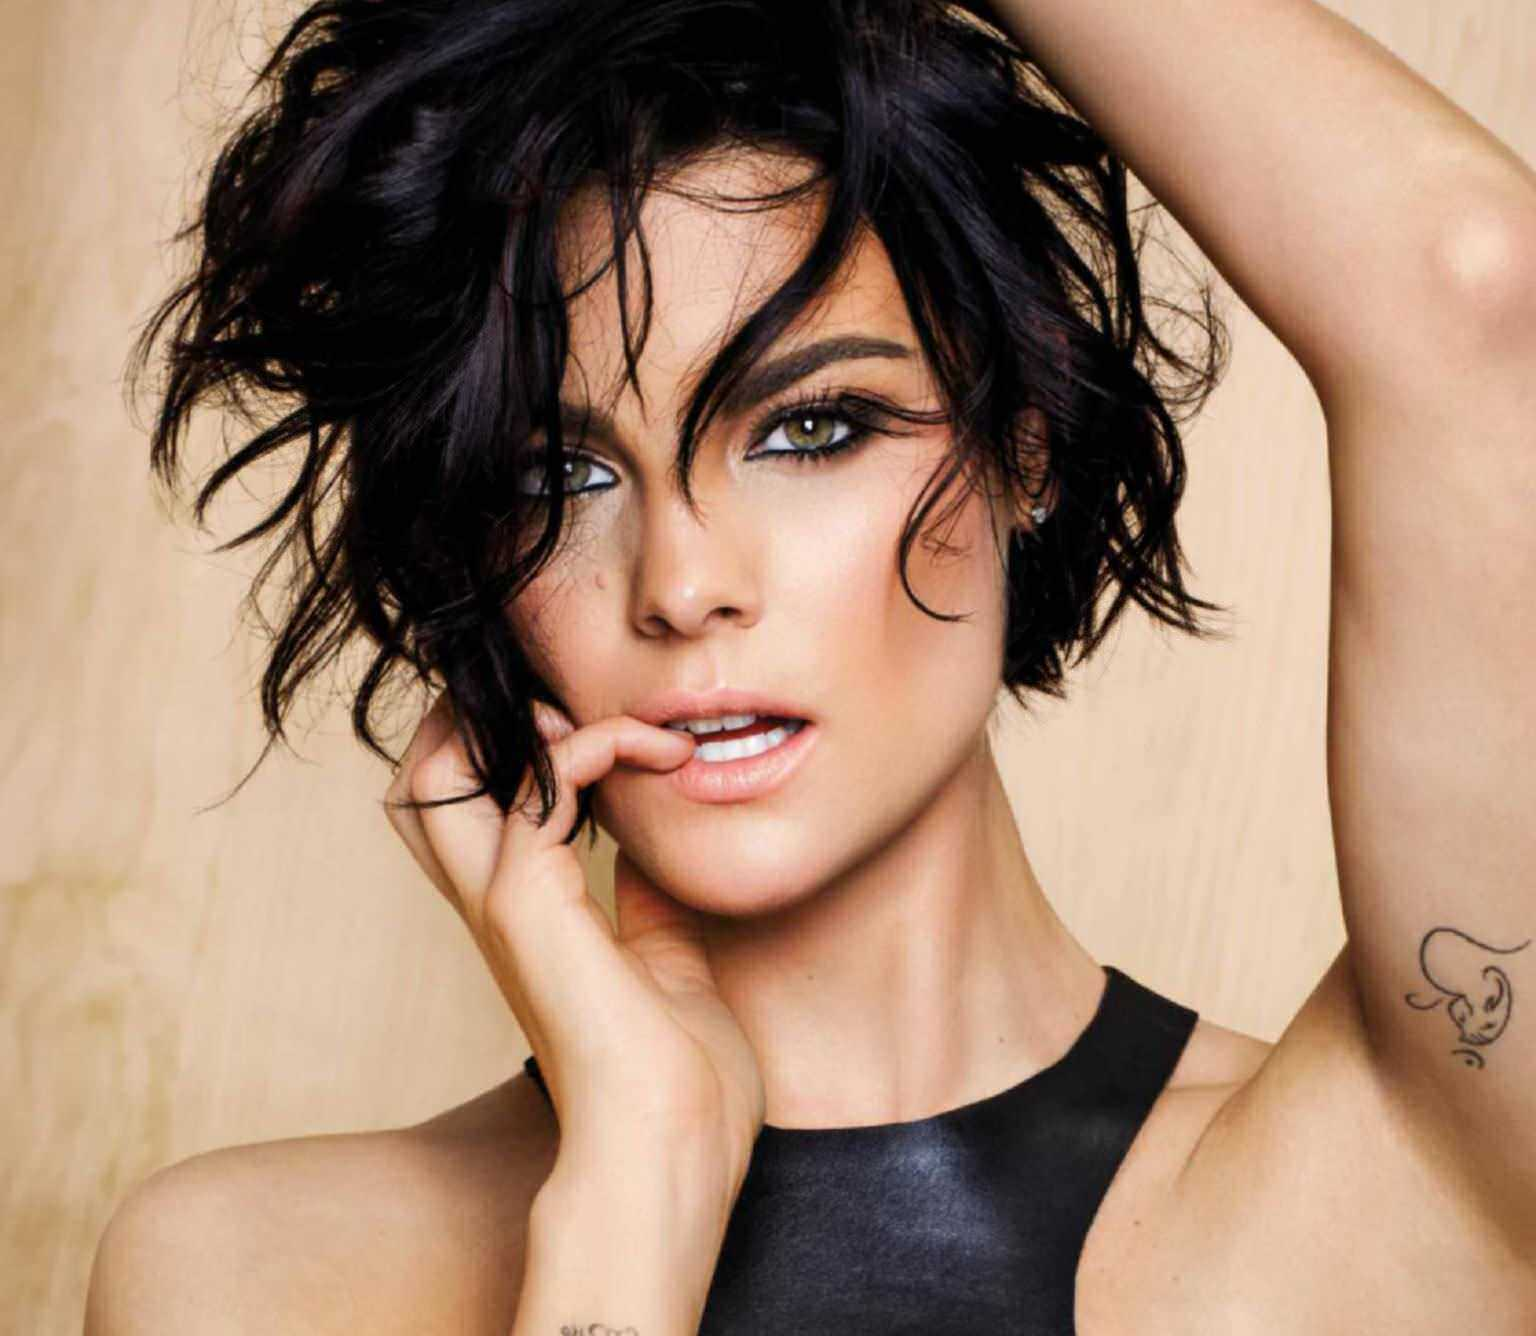 Actress Jaimie Alexander On Losing Weight and Gaining Muscle